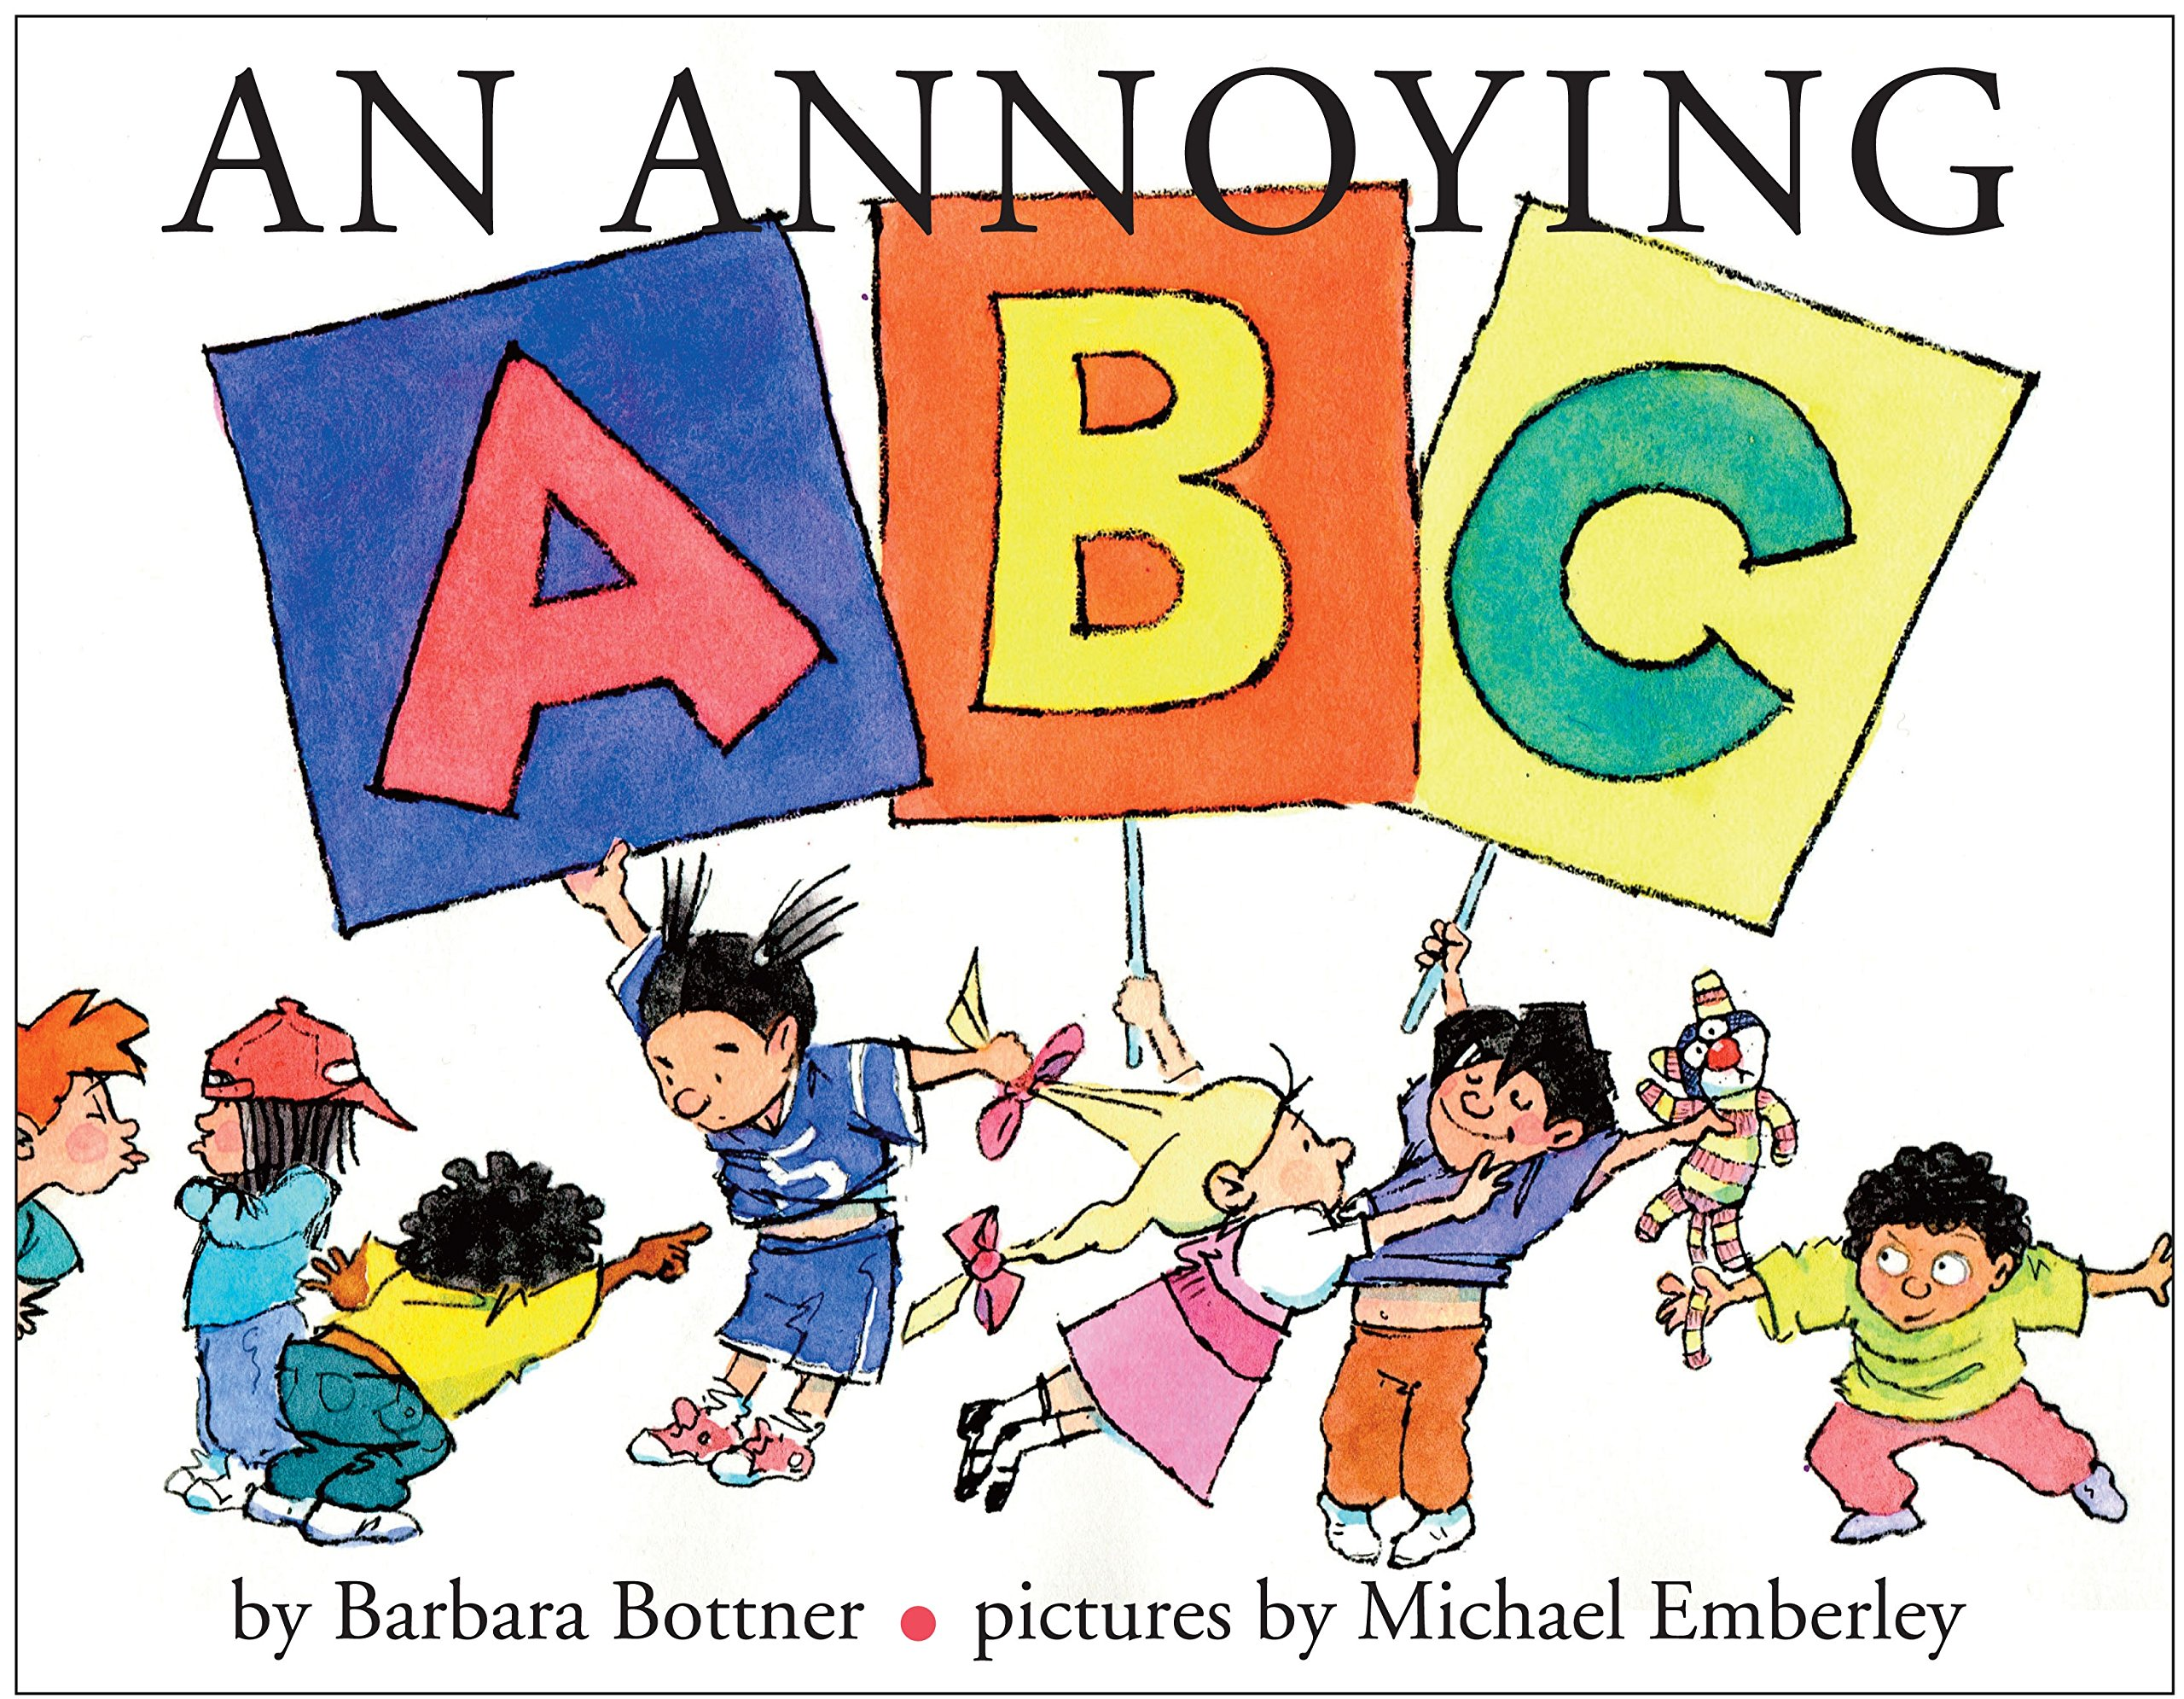 Image result for annoying abc book